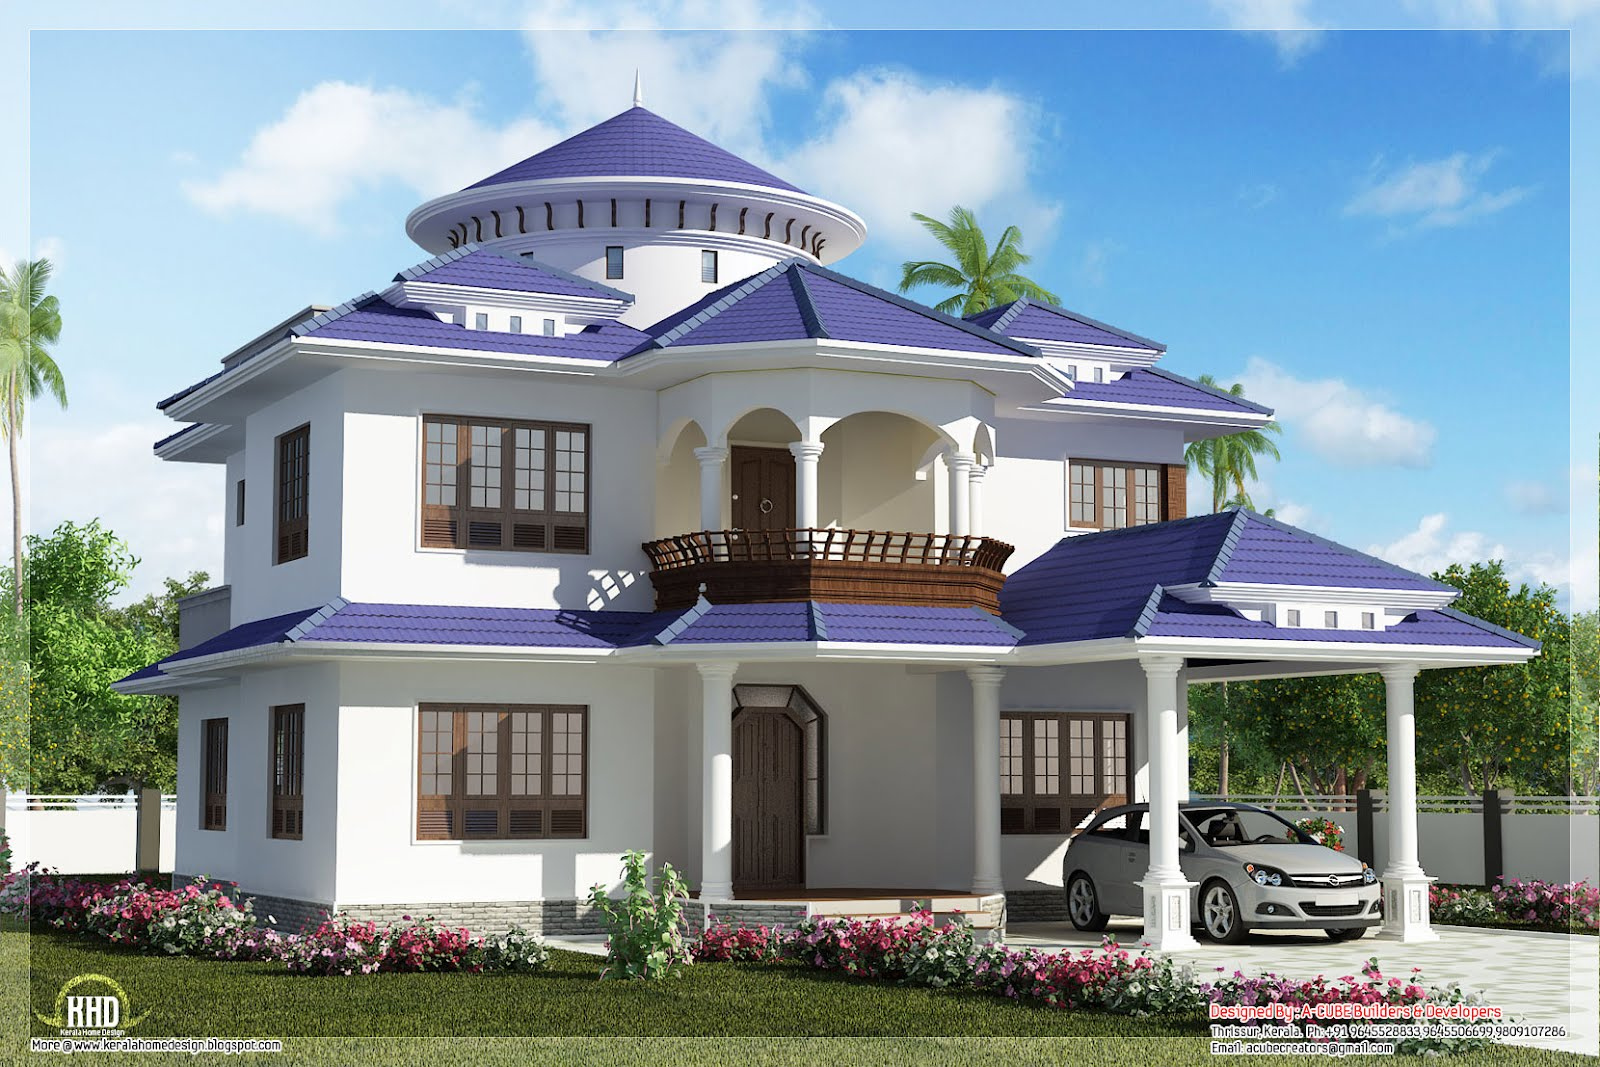 Fabulous Dreamhouse Design 1600 x 1067 · 320 kB · jpeg